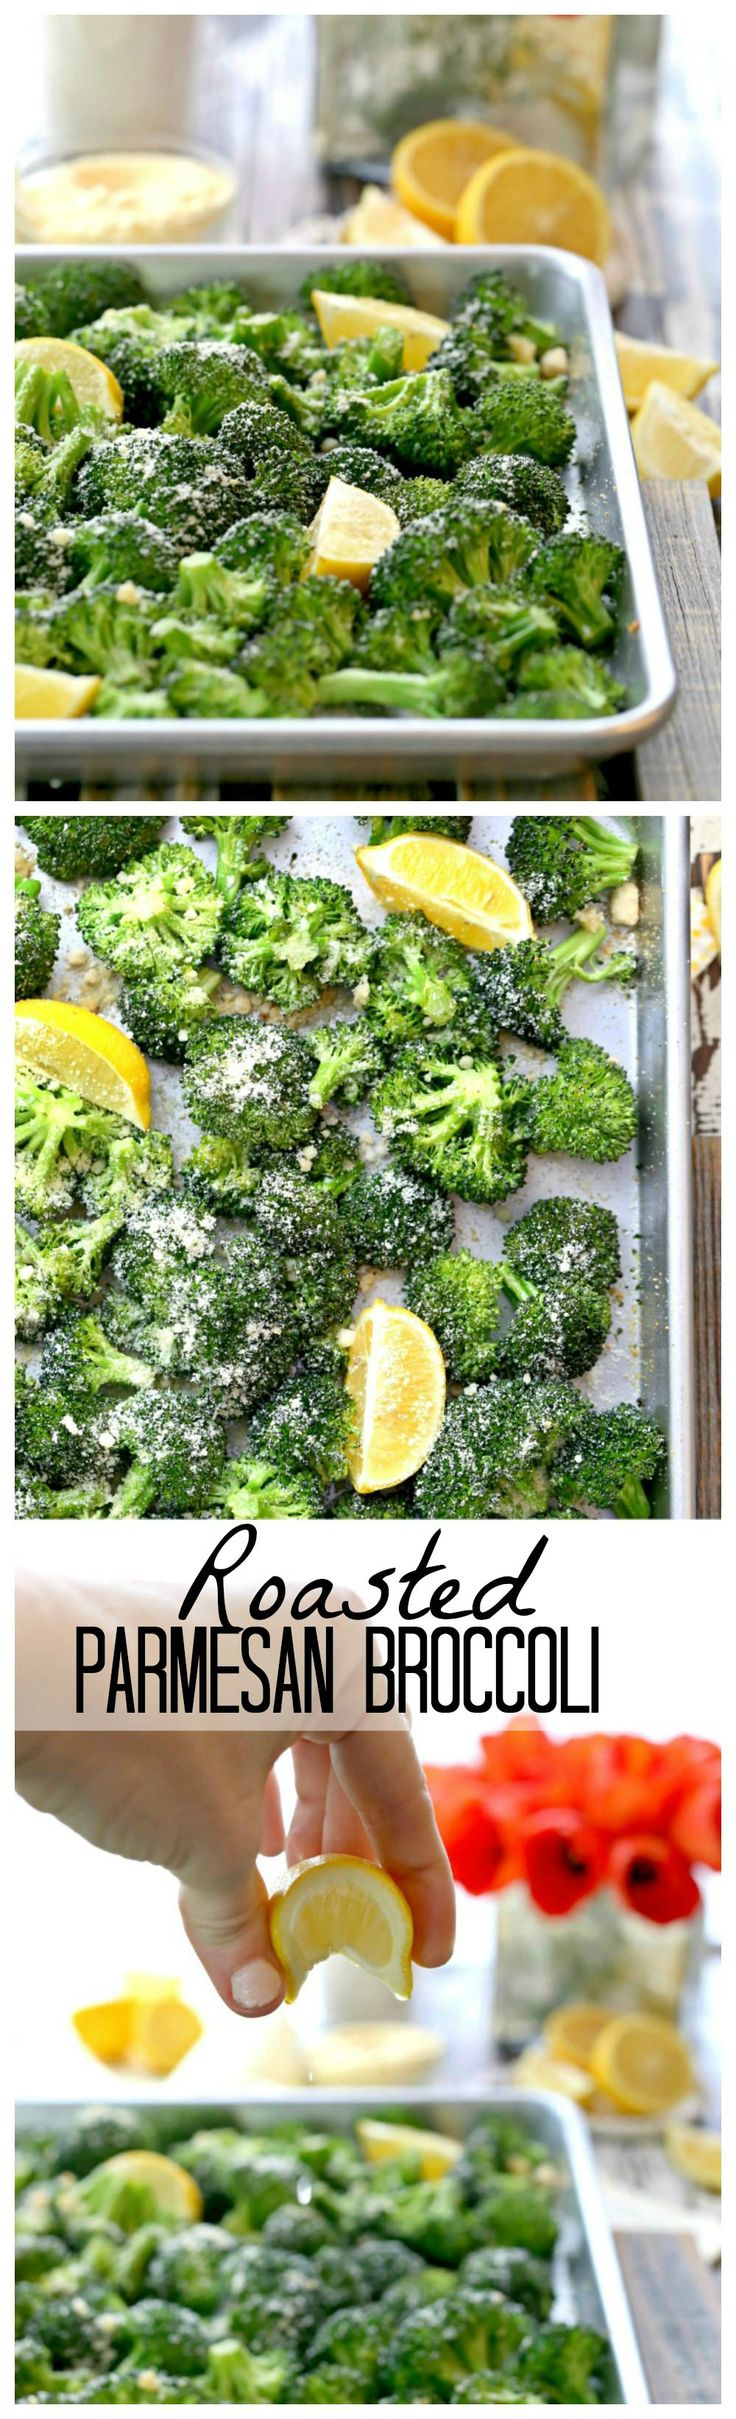 Roasted Parmesan Broccoli with Garlic and Lemon, HEAVEN! This is the BEST and…